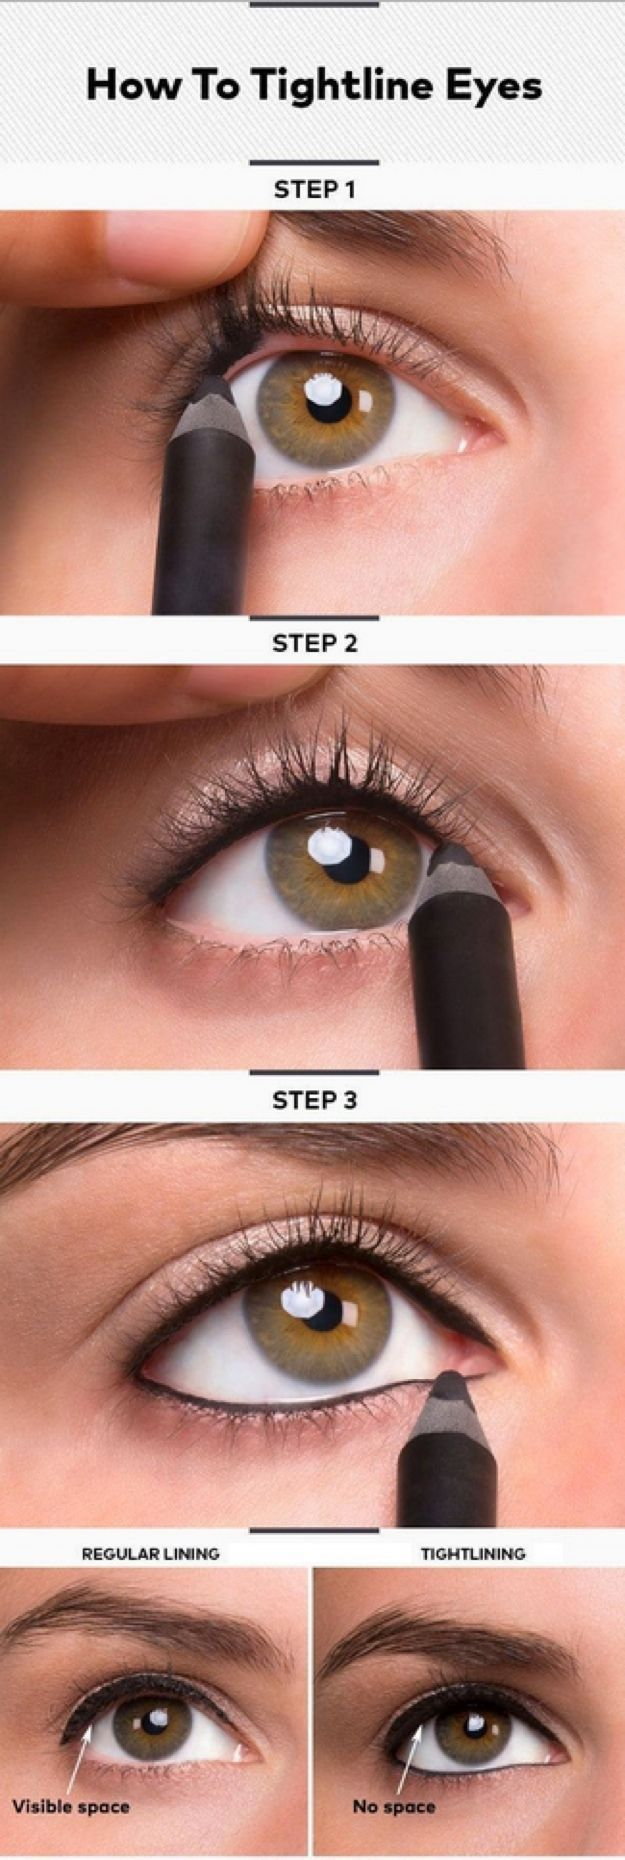 Eyeliner Tips and Tricks for A Perfect Tightline Eyeliner Look by Makeup Tutorials at http://makeuptutorials.com/makeup-tutorials-beauty-tips